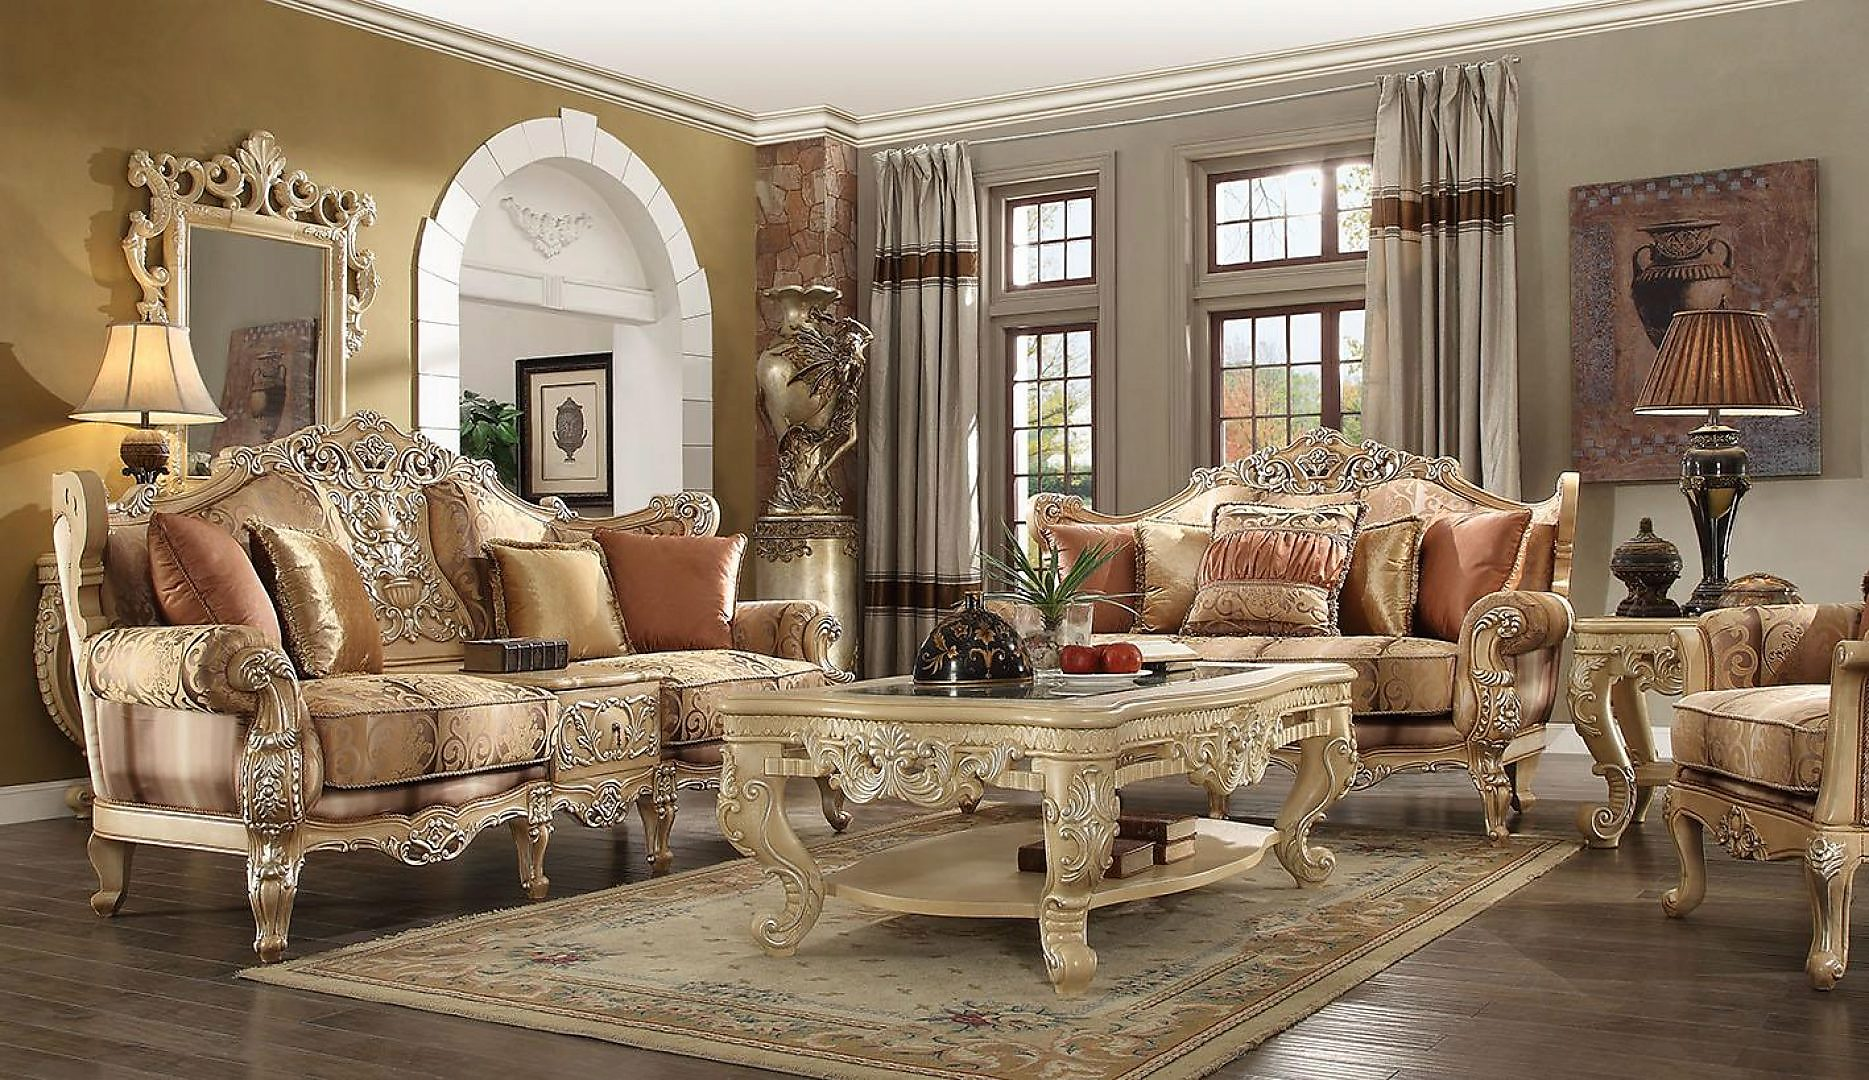 Traditional Victorian HD-1633 Sofa and Loveseat Set 2Pcs by Homey Design